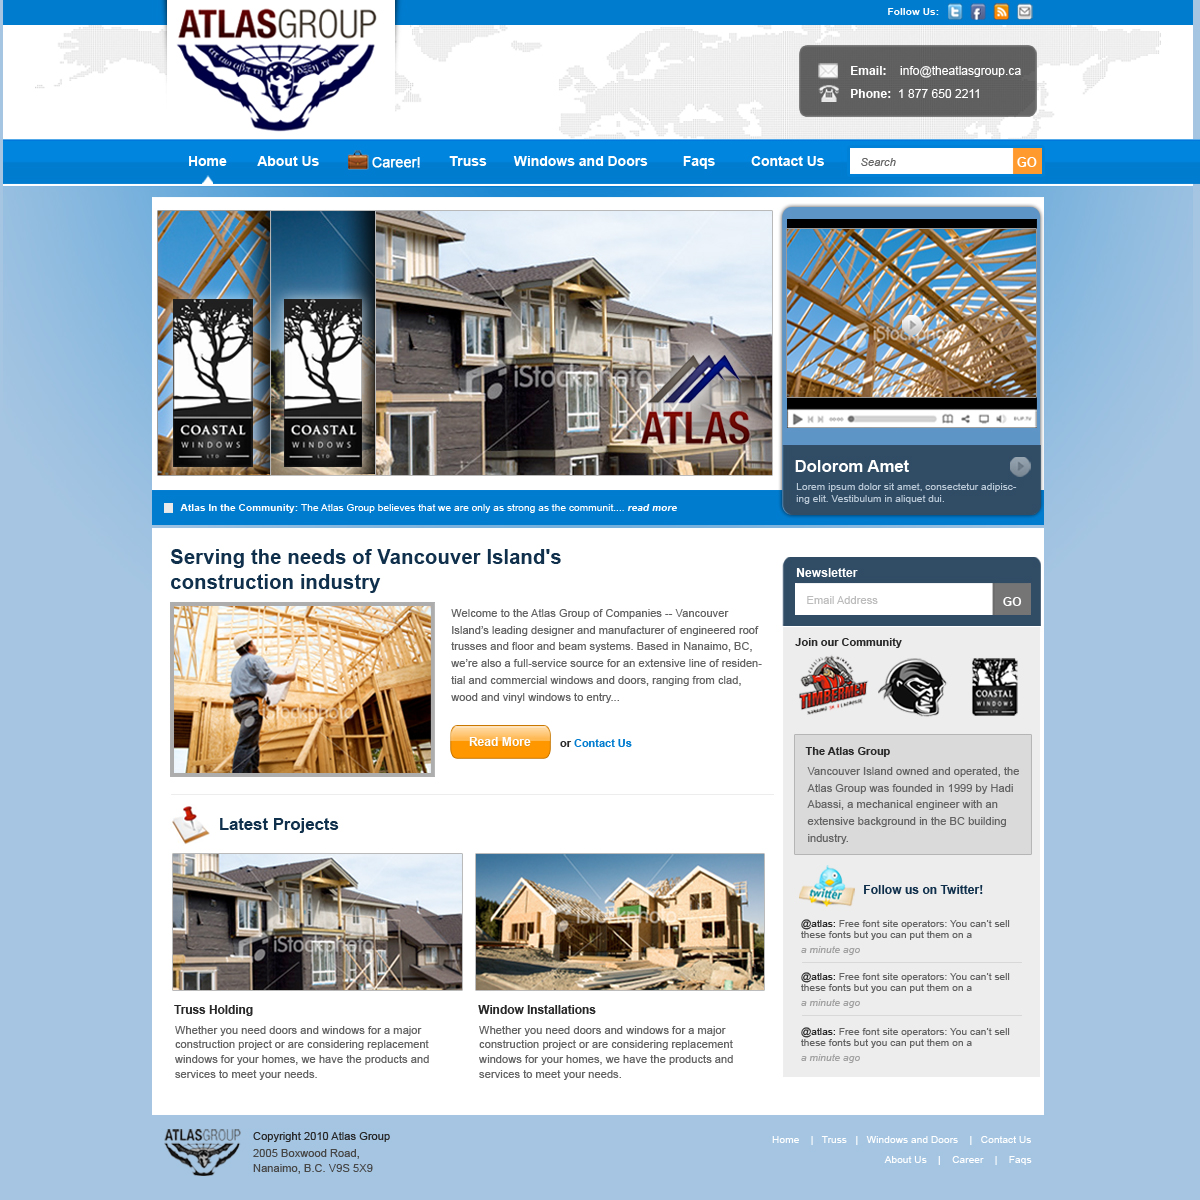 Web Page Design by rockpinoy - Entry No. 42 in the Web Page Design Contest The Atlas Group Website.